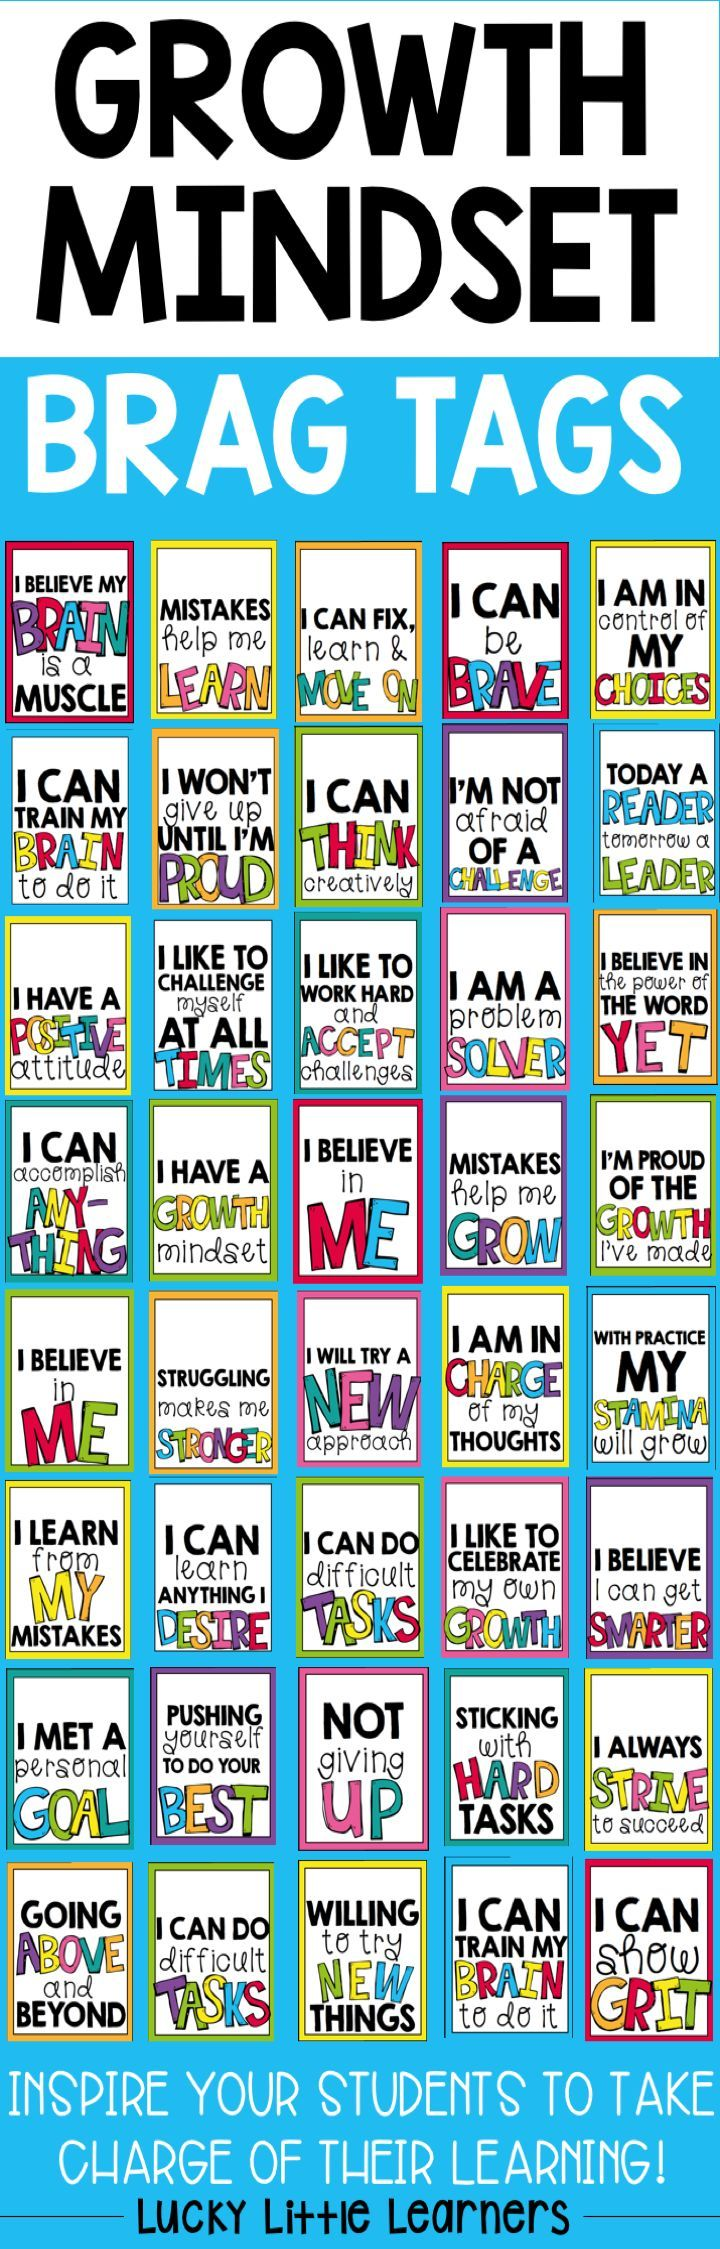 Inspire your students to take charge of their learning with these growth mindset brag tag incentives. Brag tags included: -Willing To Try New Things -Sticking With Hard Tasks -Not Giving Up -Pushing Yourself To Do Your Best -Going Above And Beyond -I Believe In Me -I Can Learn Anything I Desire -I Learn From My Mistakes -I Can Accomplish Anything -I Can Do Difficult Tasks -I Am In Charge Of My Thoughts -I Like To Celebrate My Own Growth -I Like To Challenge Myself At All Times -I Have A Grow